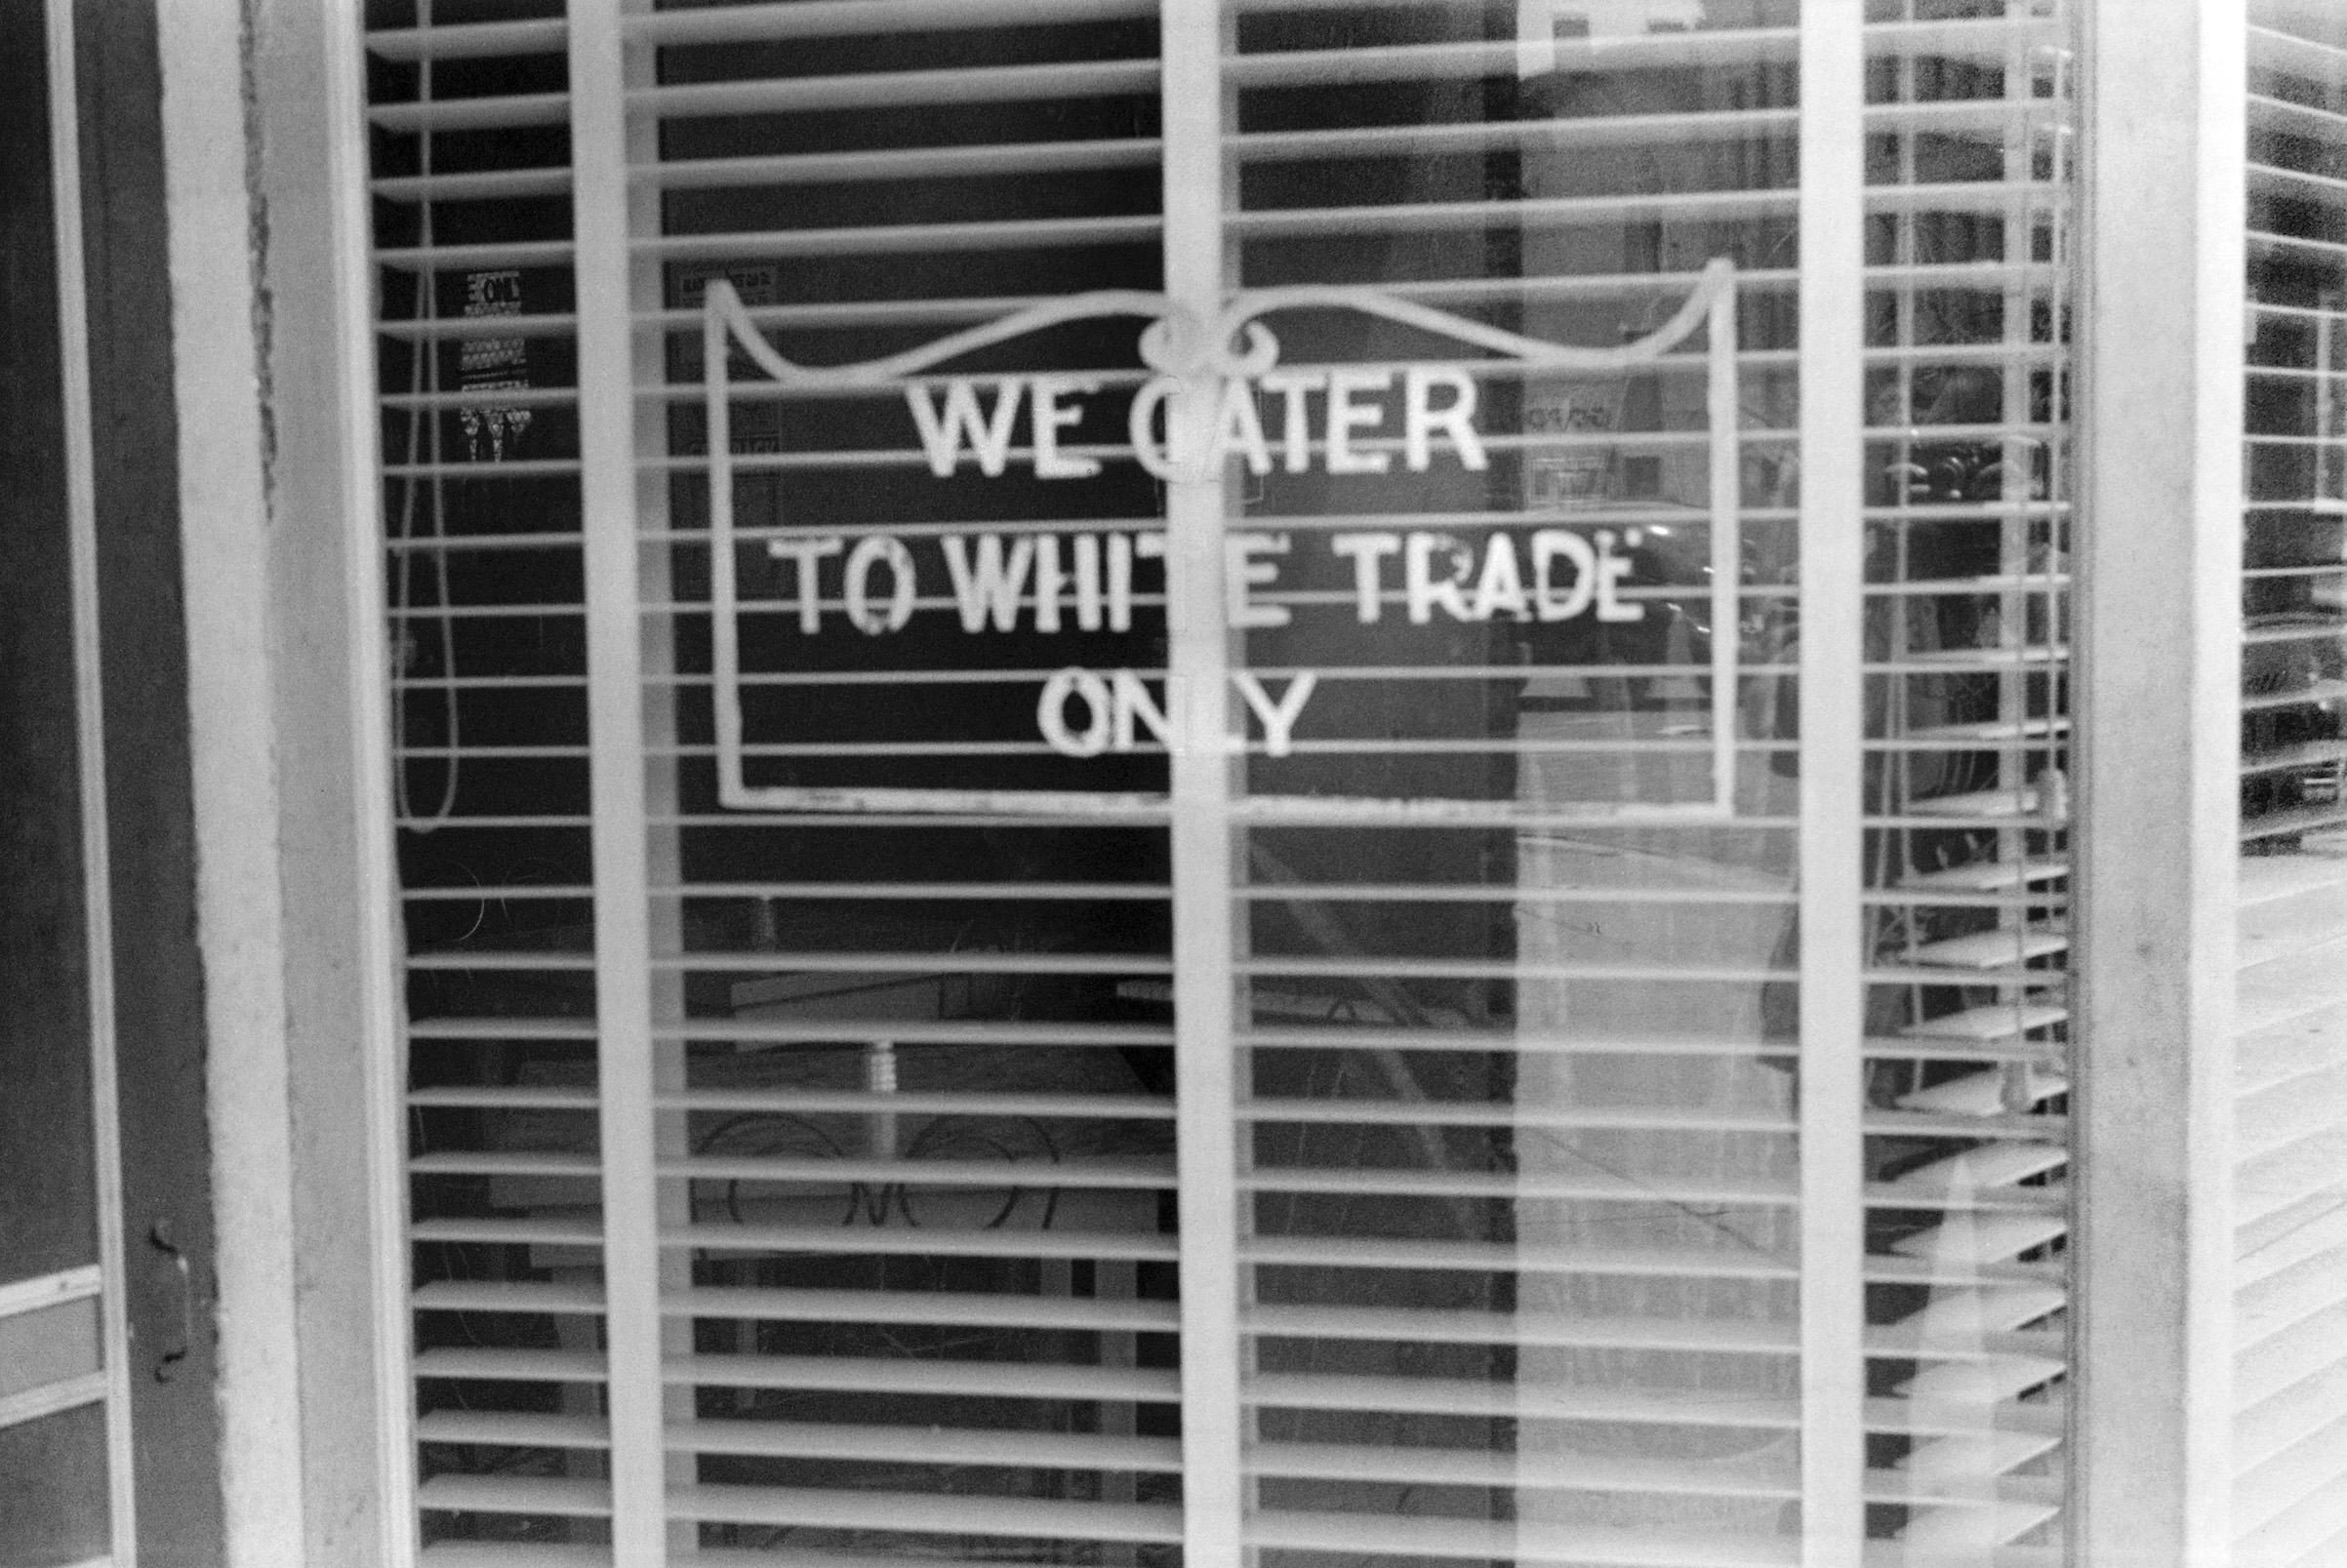 Restaurant with Sign  We Cater to White Trade Only,  Lancaster Ohio, USA, Ben Shahn, Farm Security Administration, August 1938